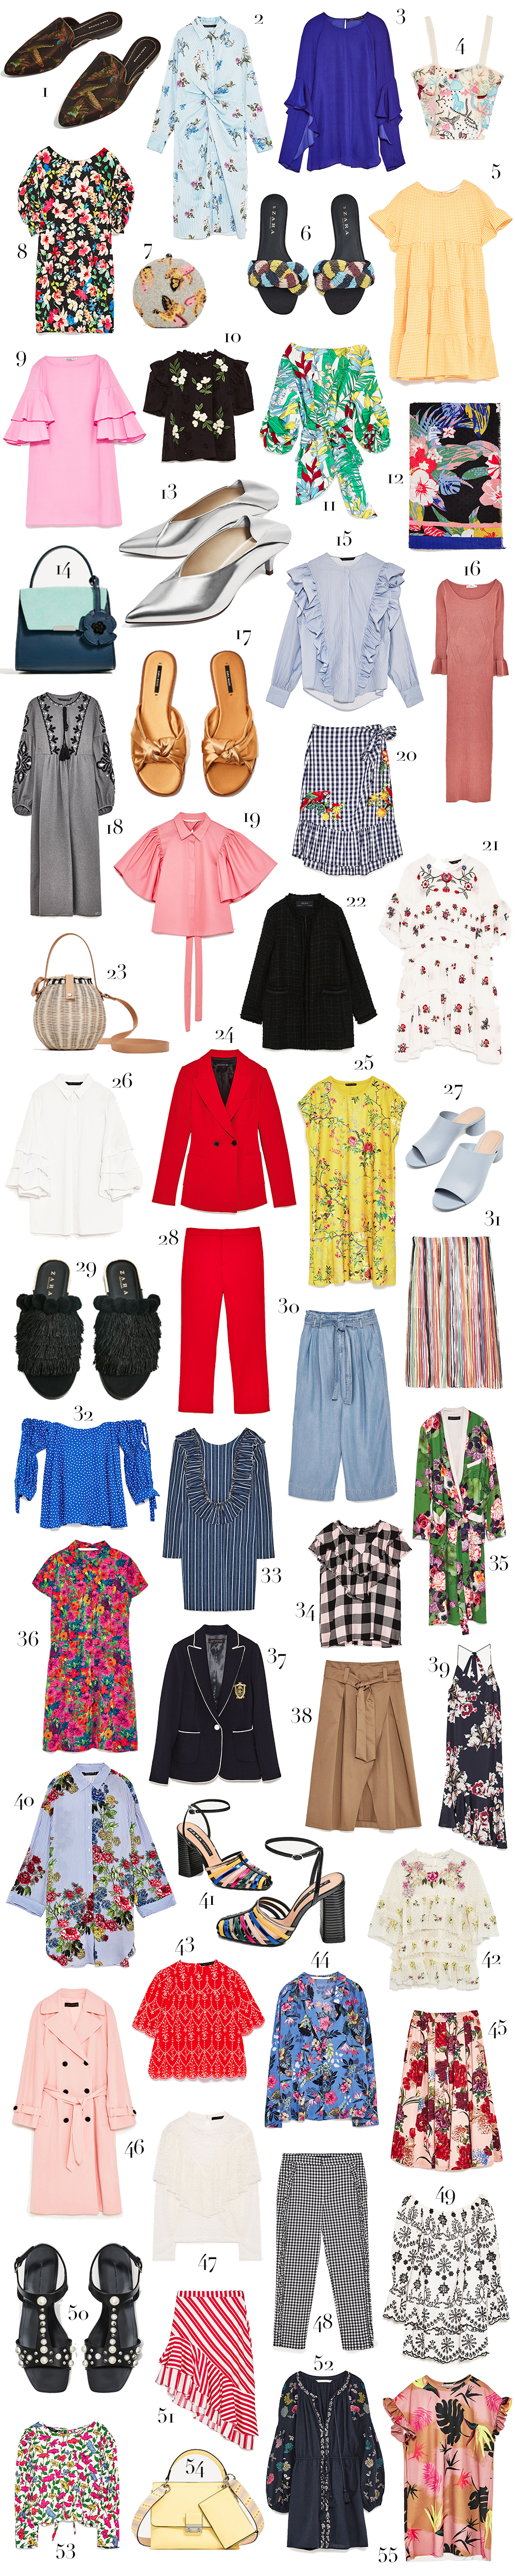 The 55 best things to buy ASAP at the Zara sale!